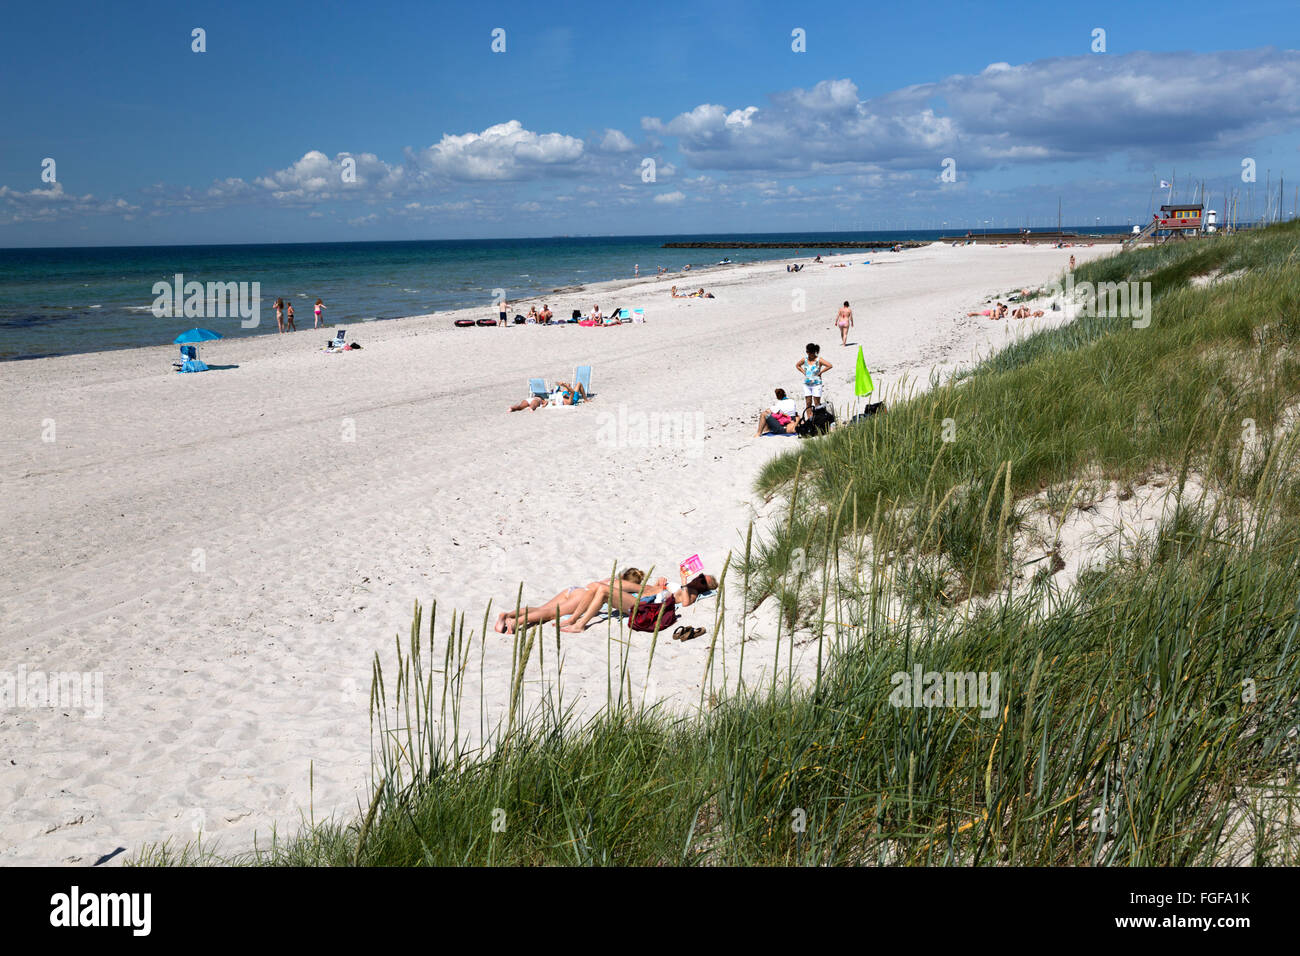 Sandy beach and sand dunes, Skanör Falsterbo, Falsterbo Peninsula, Skåne (Scania), South Sweden, Sweden, Scandinavia, Stock Photo